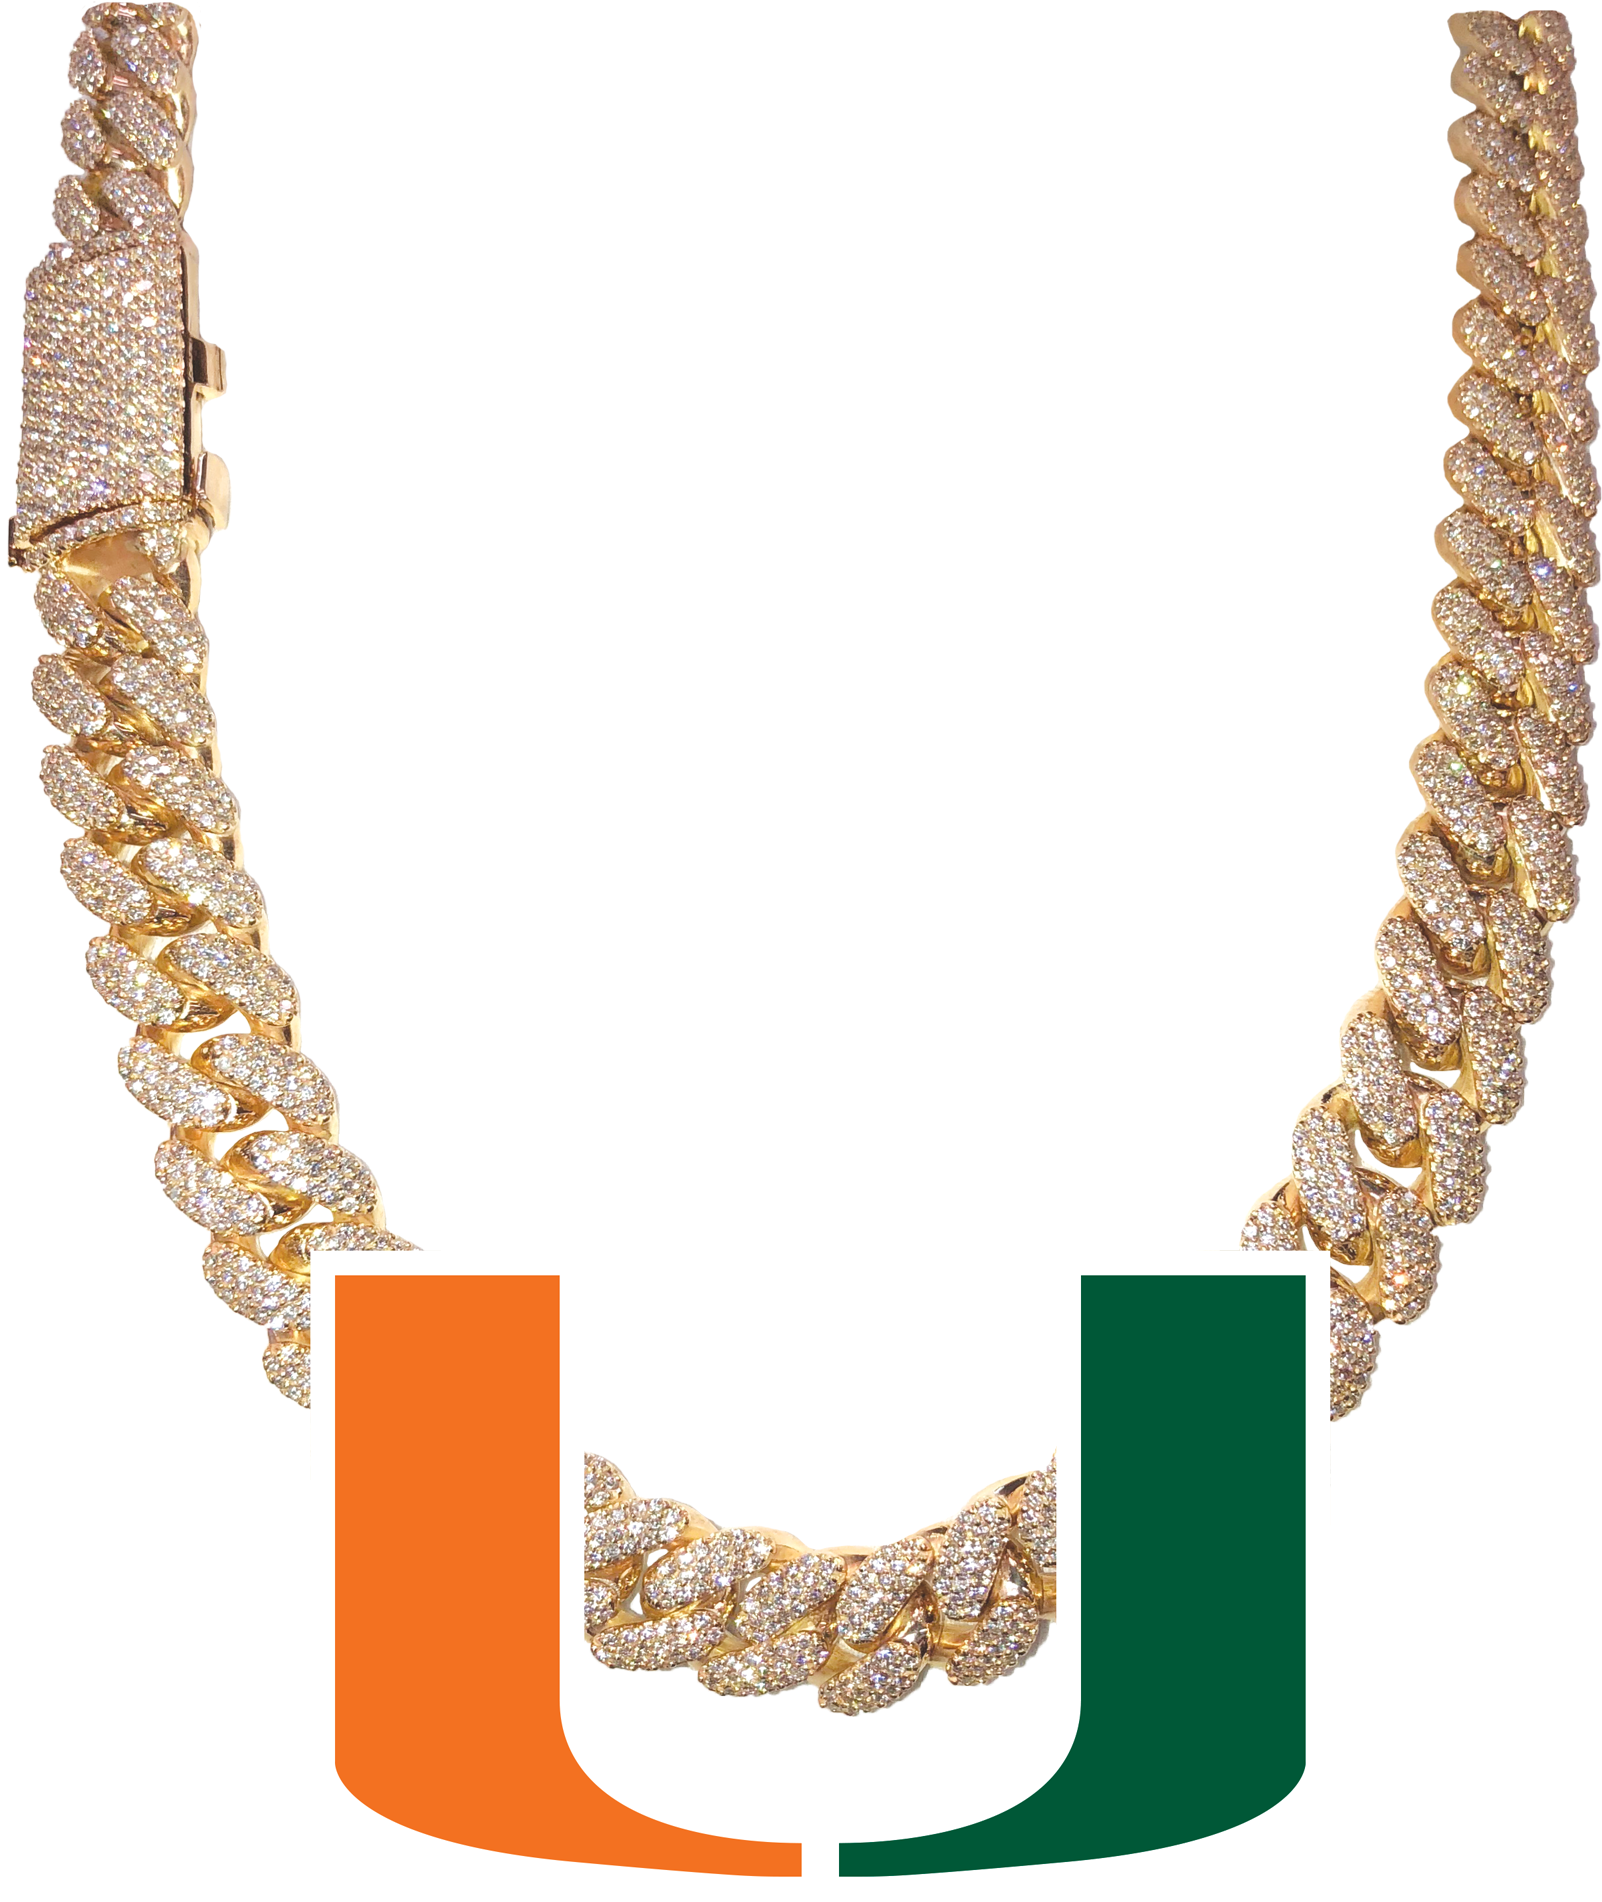 HD King Of Bling Ajs Jewelry Turnover Chain Transparent.